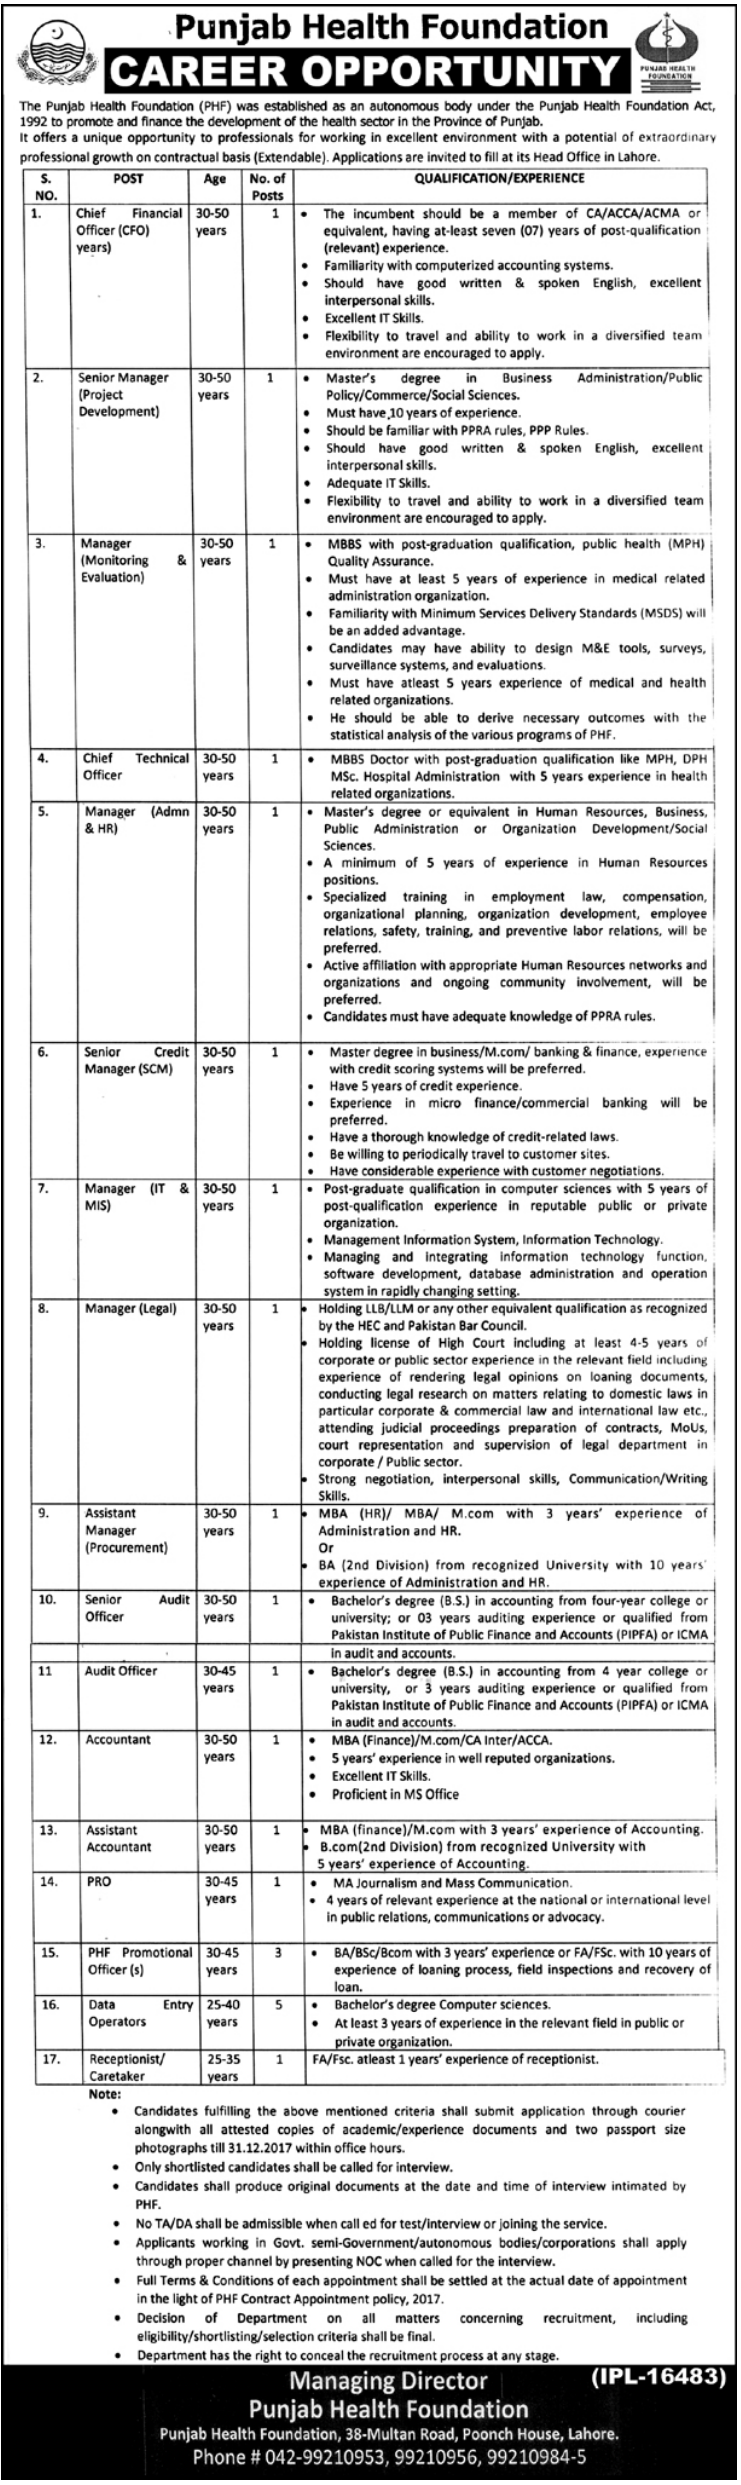 Lahore Punjab Health Foundation 23 Jobs The Nation Newspaper 15 Dec 2017